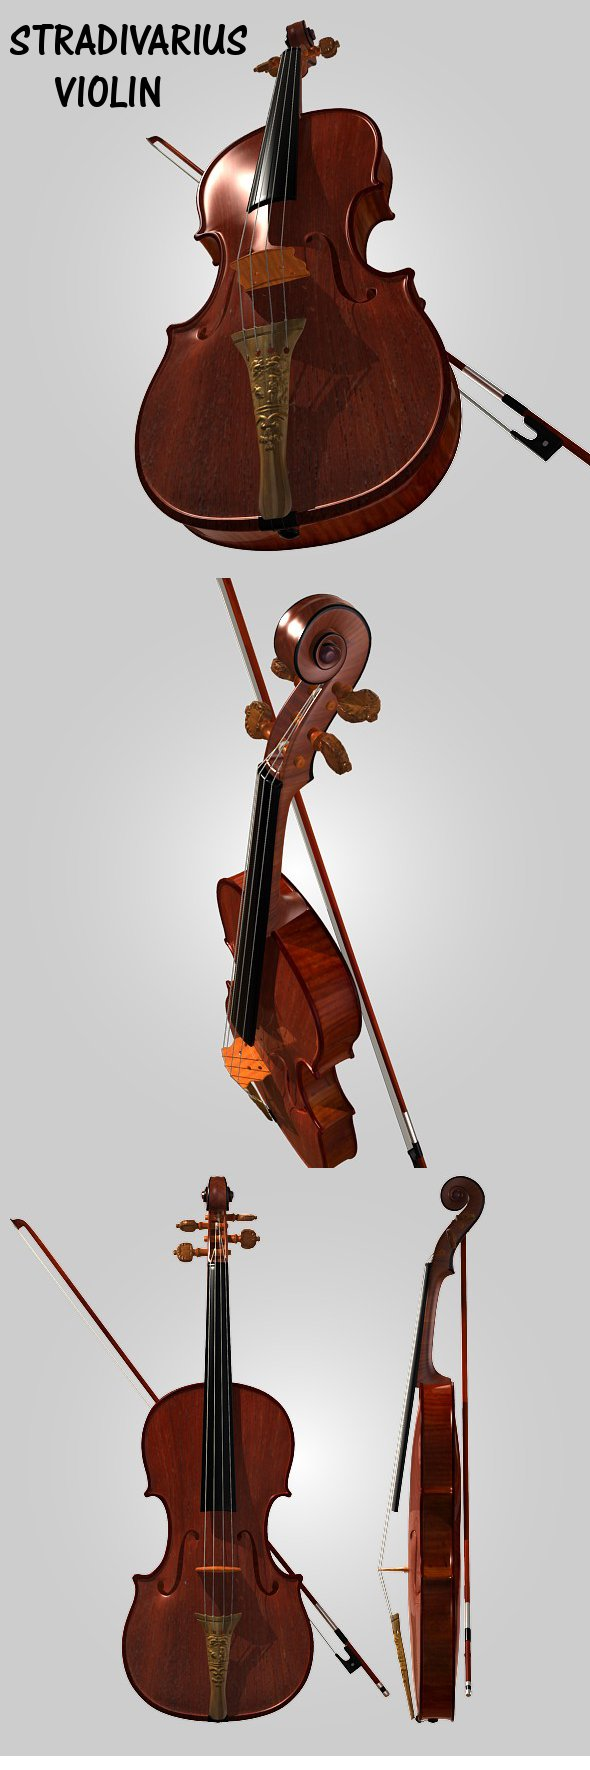 Stradivarius violin - 3DOcean Item for Sale